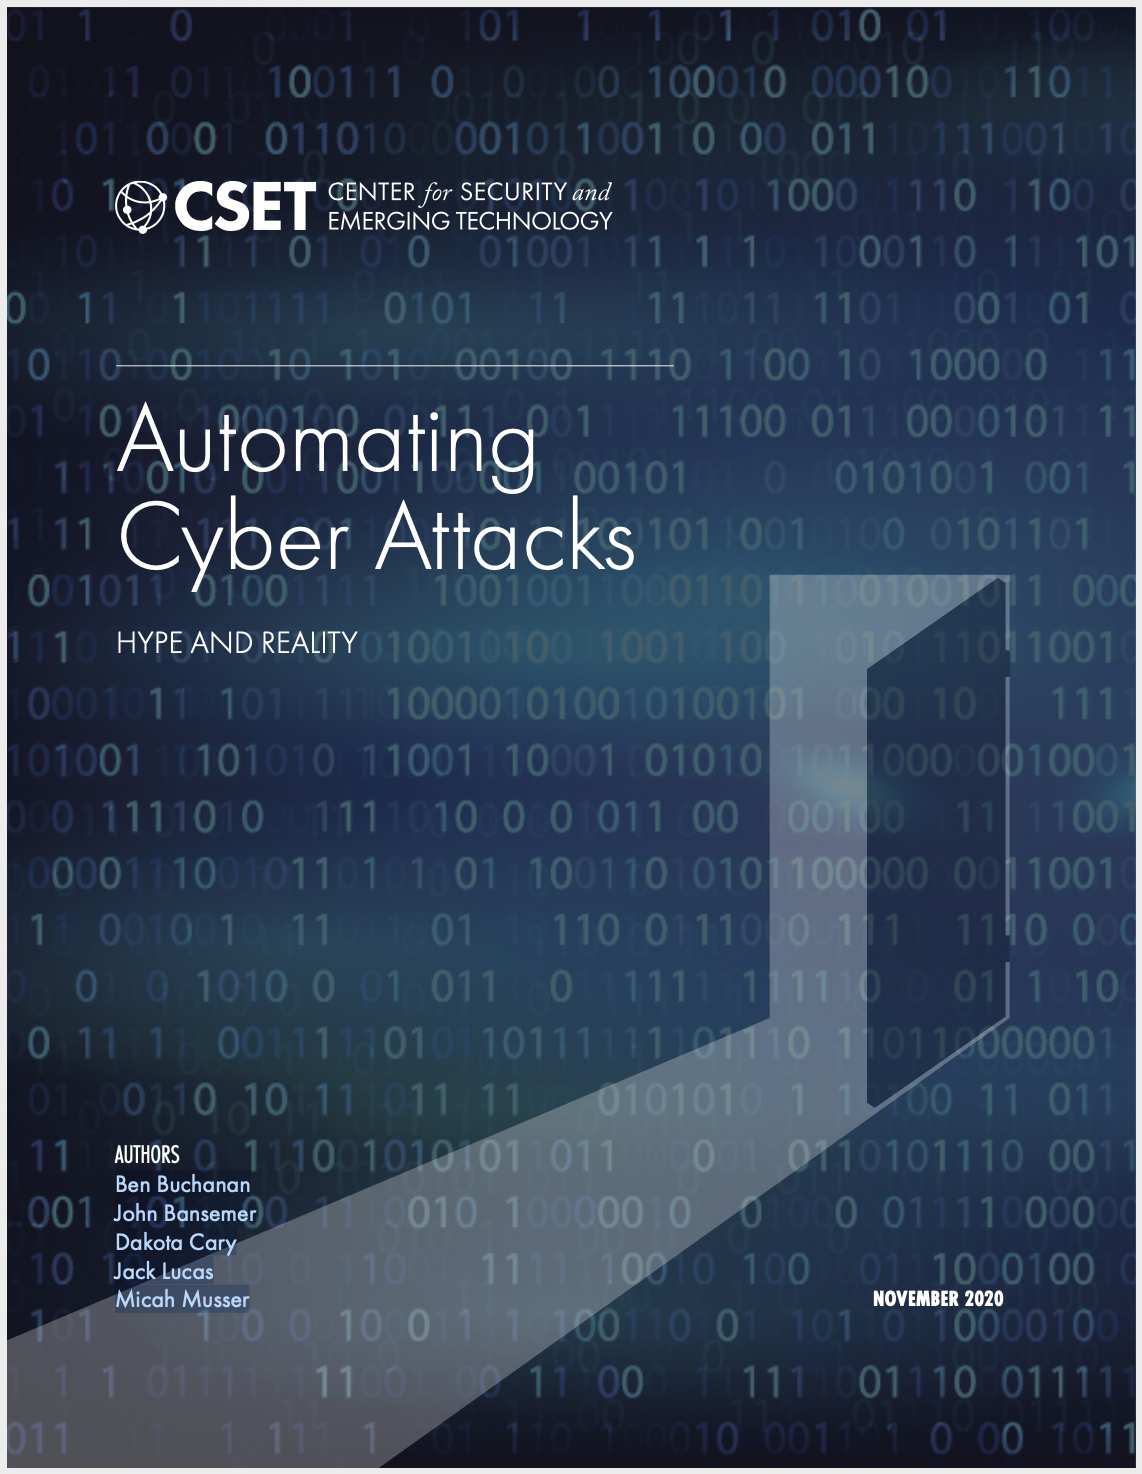 CSET Automating Cyber Attacks Image